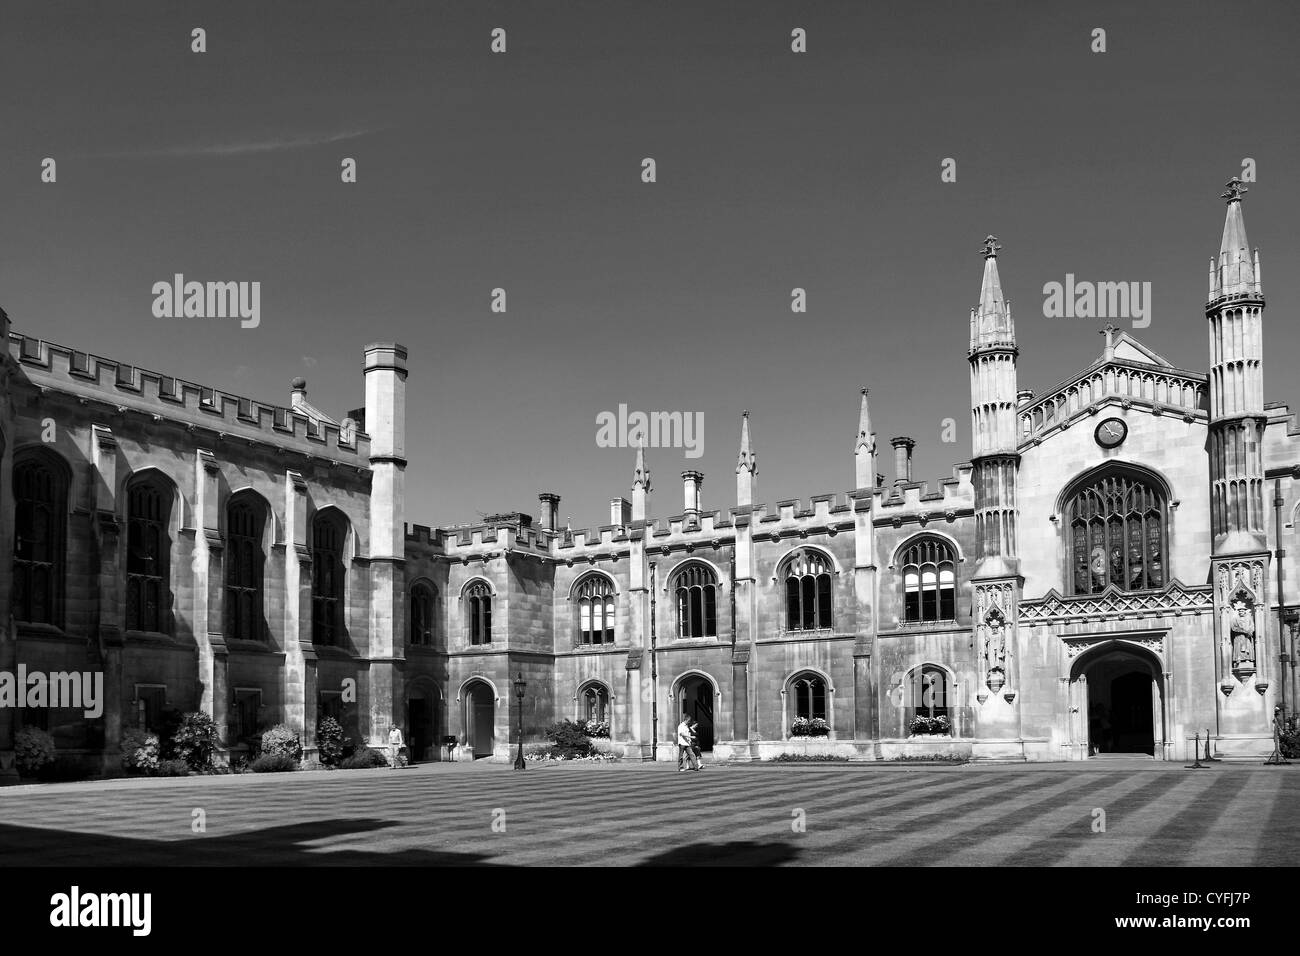 Black and White image, exterior view of Corpus Christi College a University college, Cambridge City, Cambridgeshire, - Stock Image